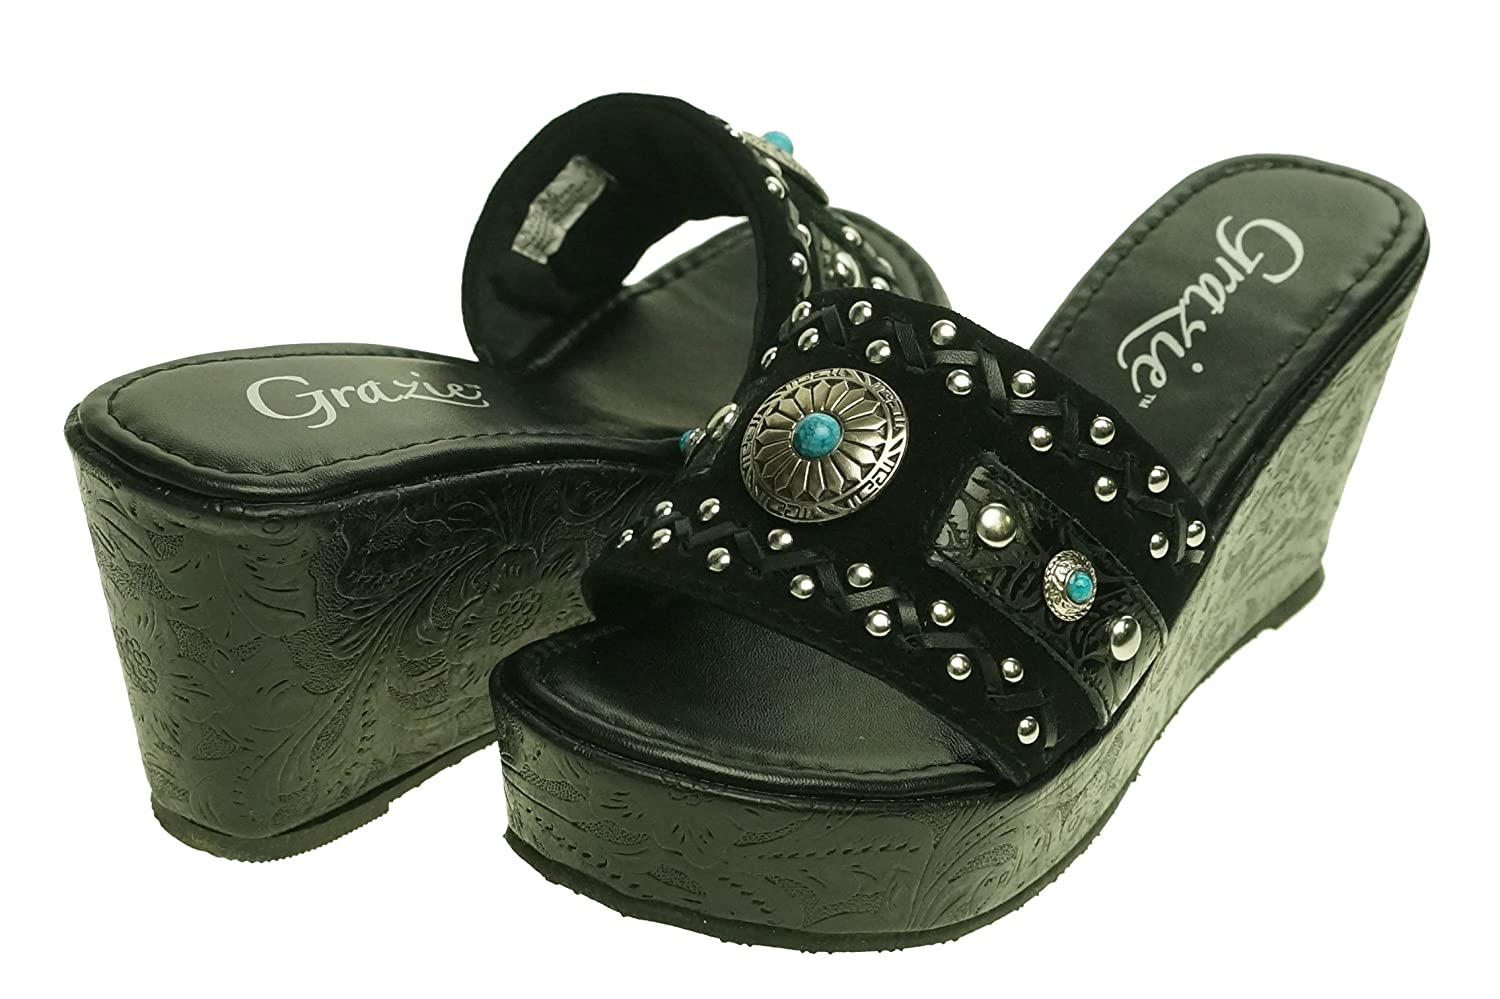 Grazie Women's Thora Wedge Sandals B06XC9K19Q 11 B(M) US|Black